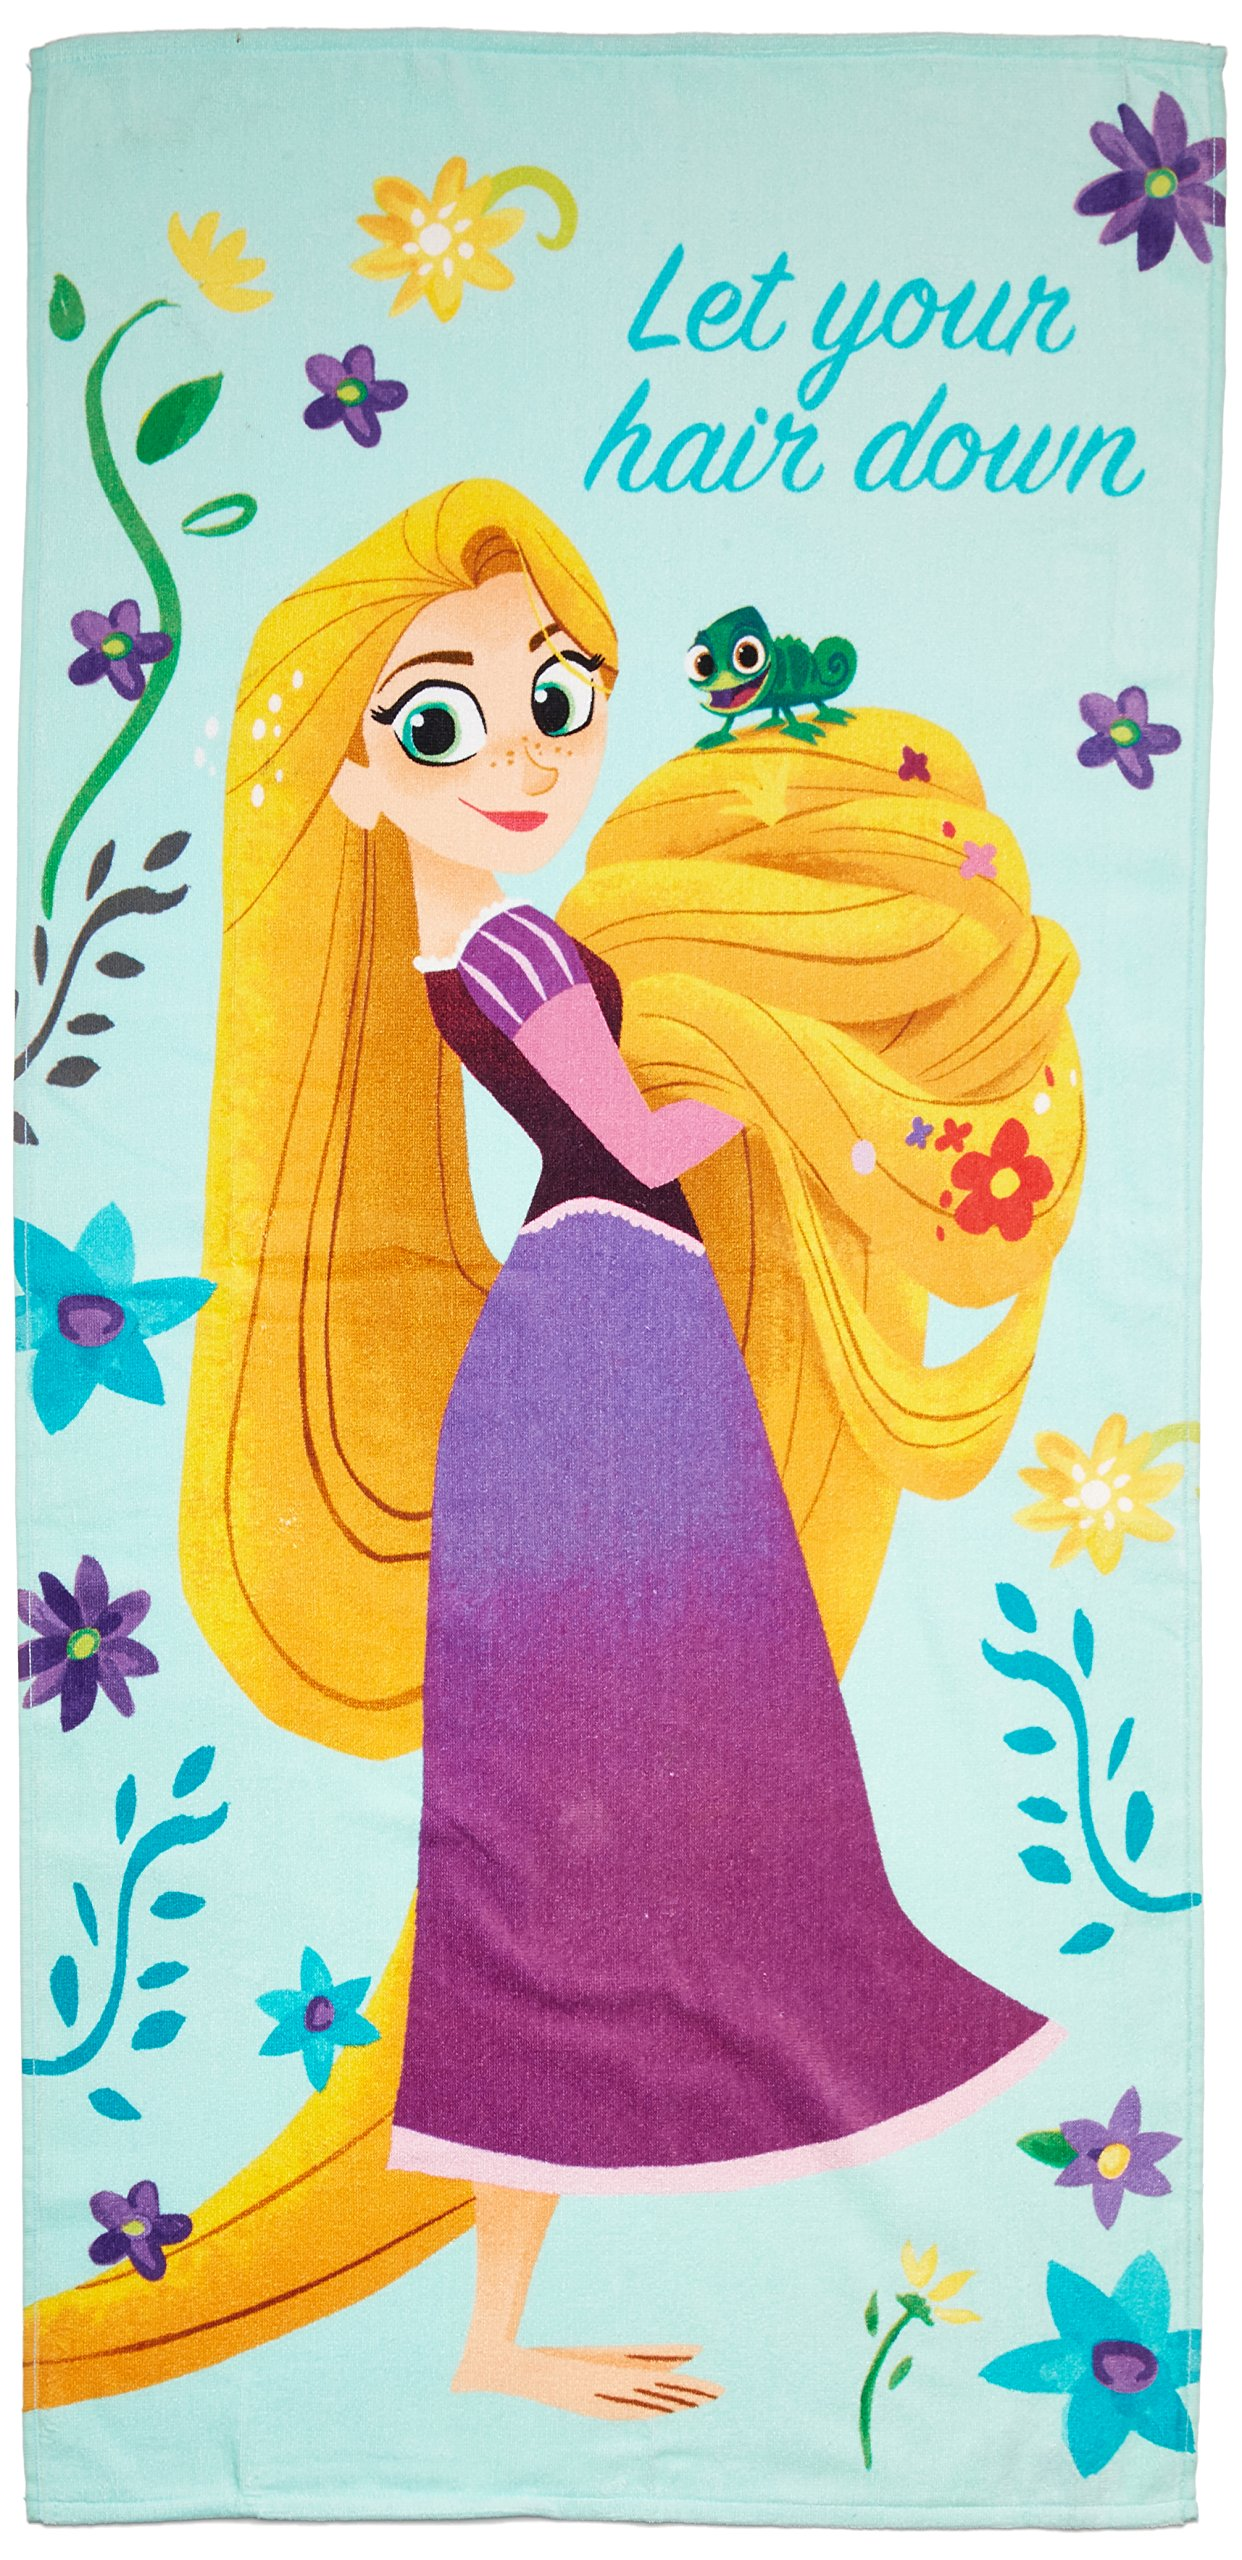 Disney Tangled Let Your Hair Down 28'' x 58'' Cotton Bath, Pool , Beach Towel, Purple/Teal/Yellow by Disney